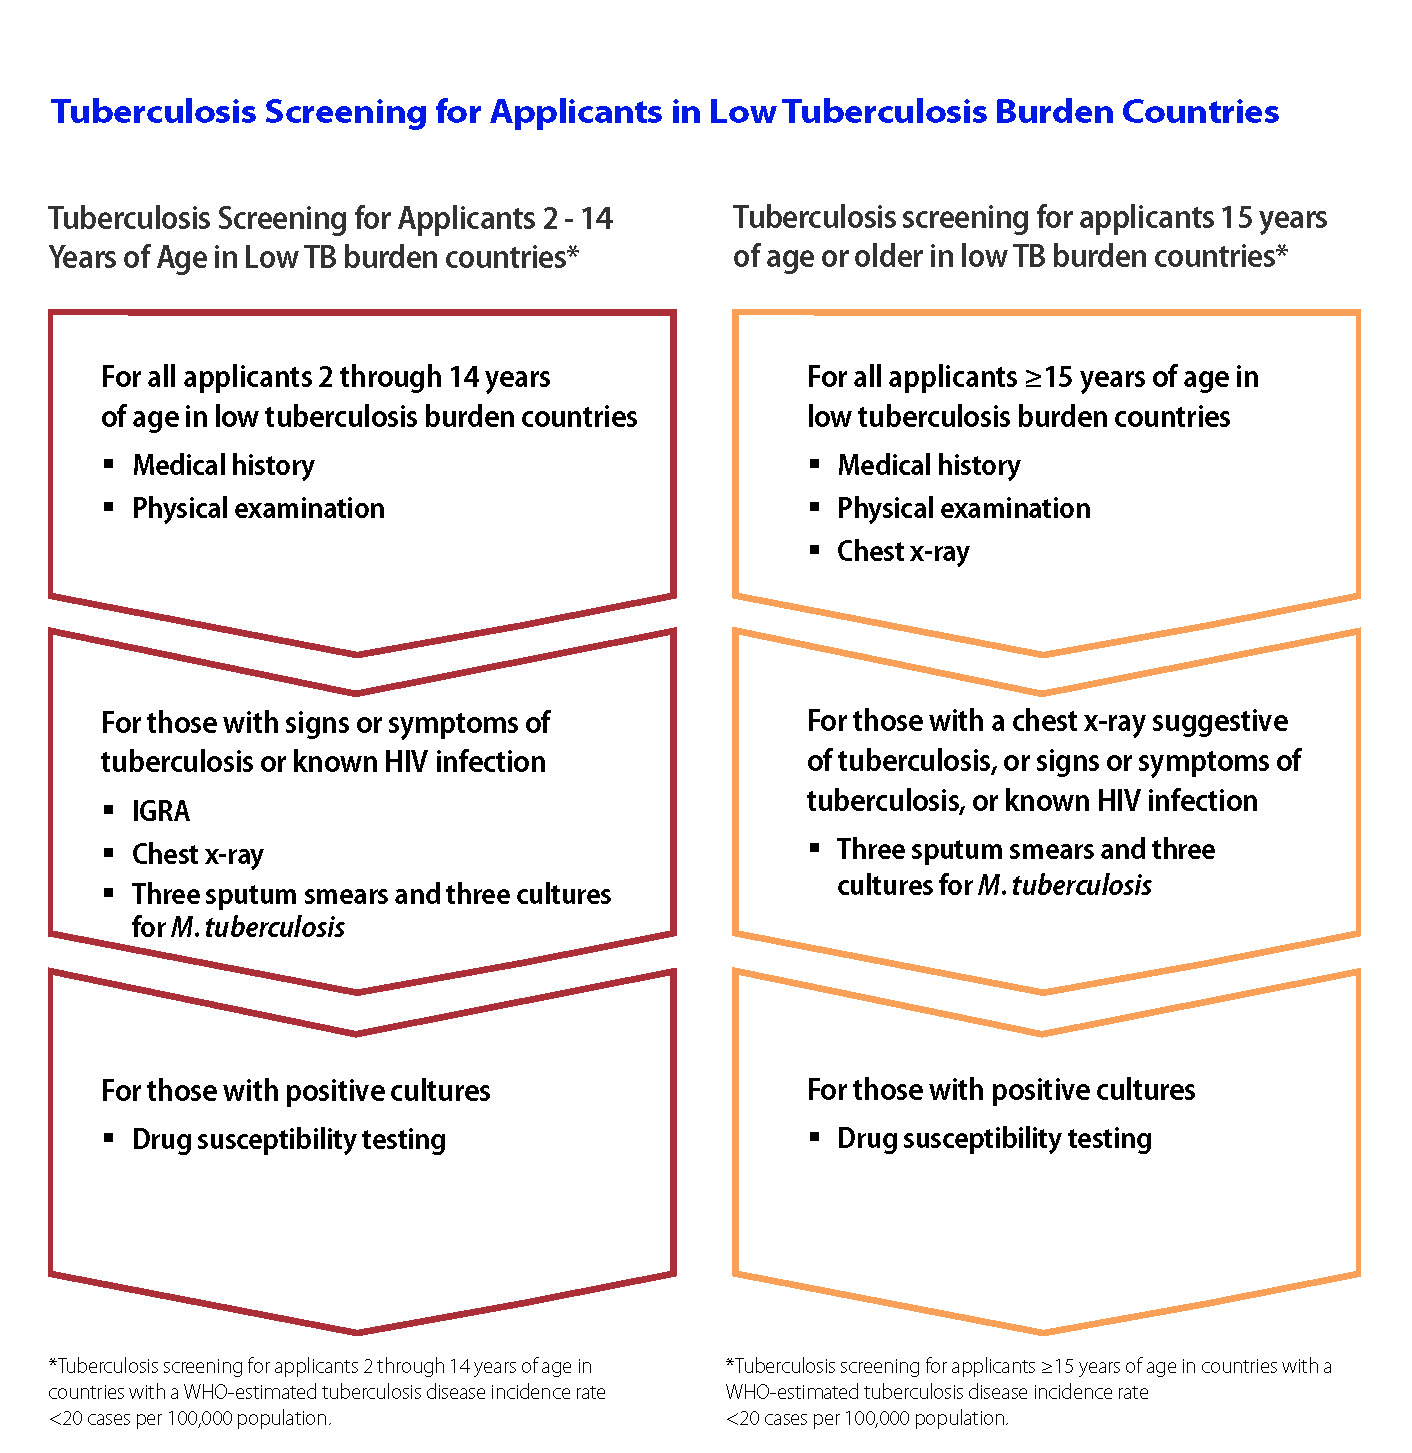 Tuberculosis Screening for Applicants in Low Tuberculosis Burden Countries